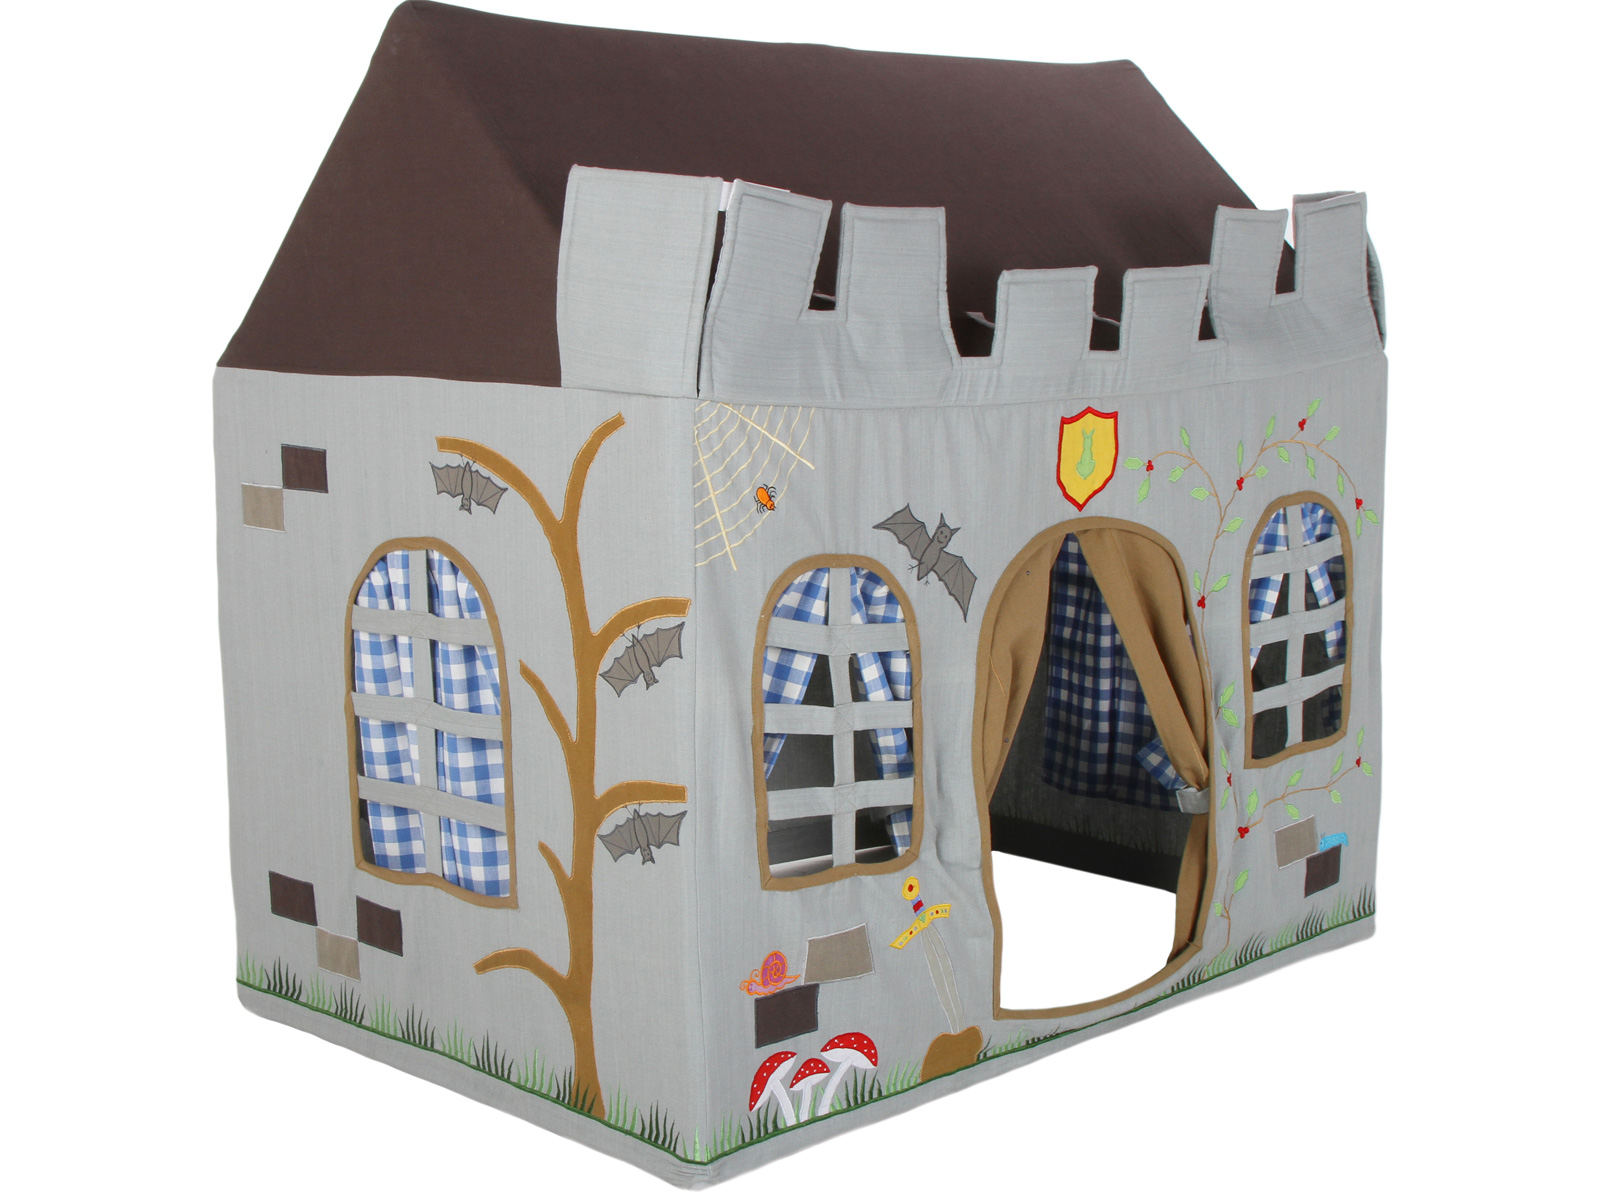 Win Green Handmade Cotton Knight's Castle Playhouse - Playhouse of Dreams  - 1